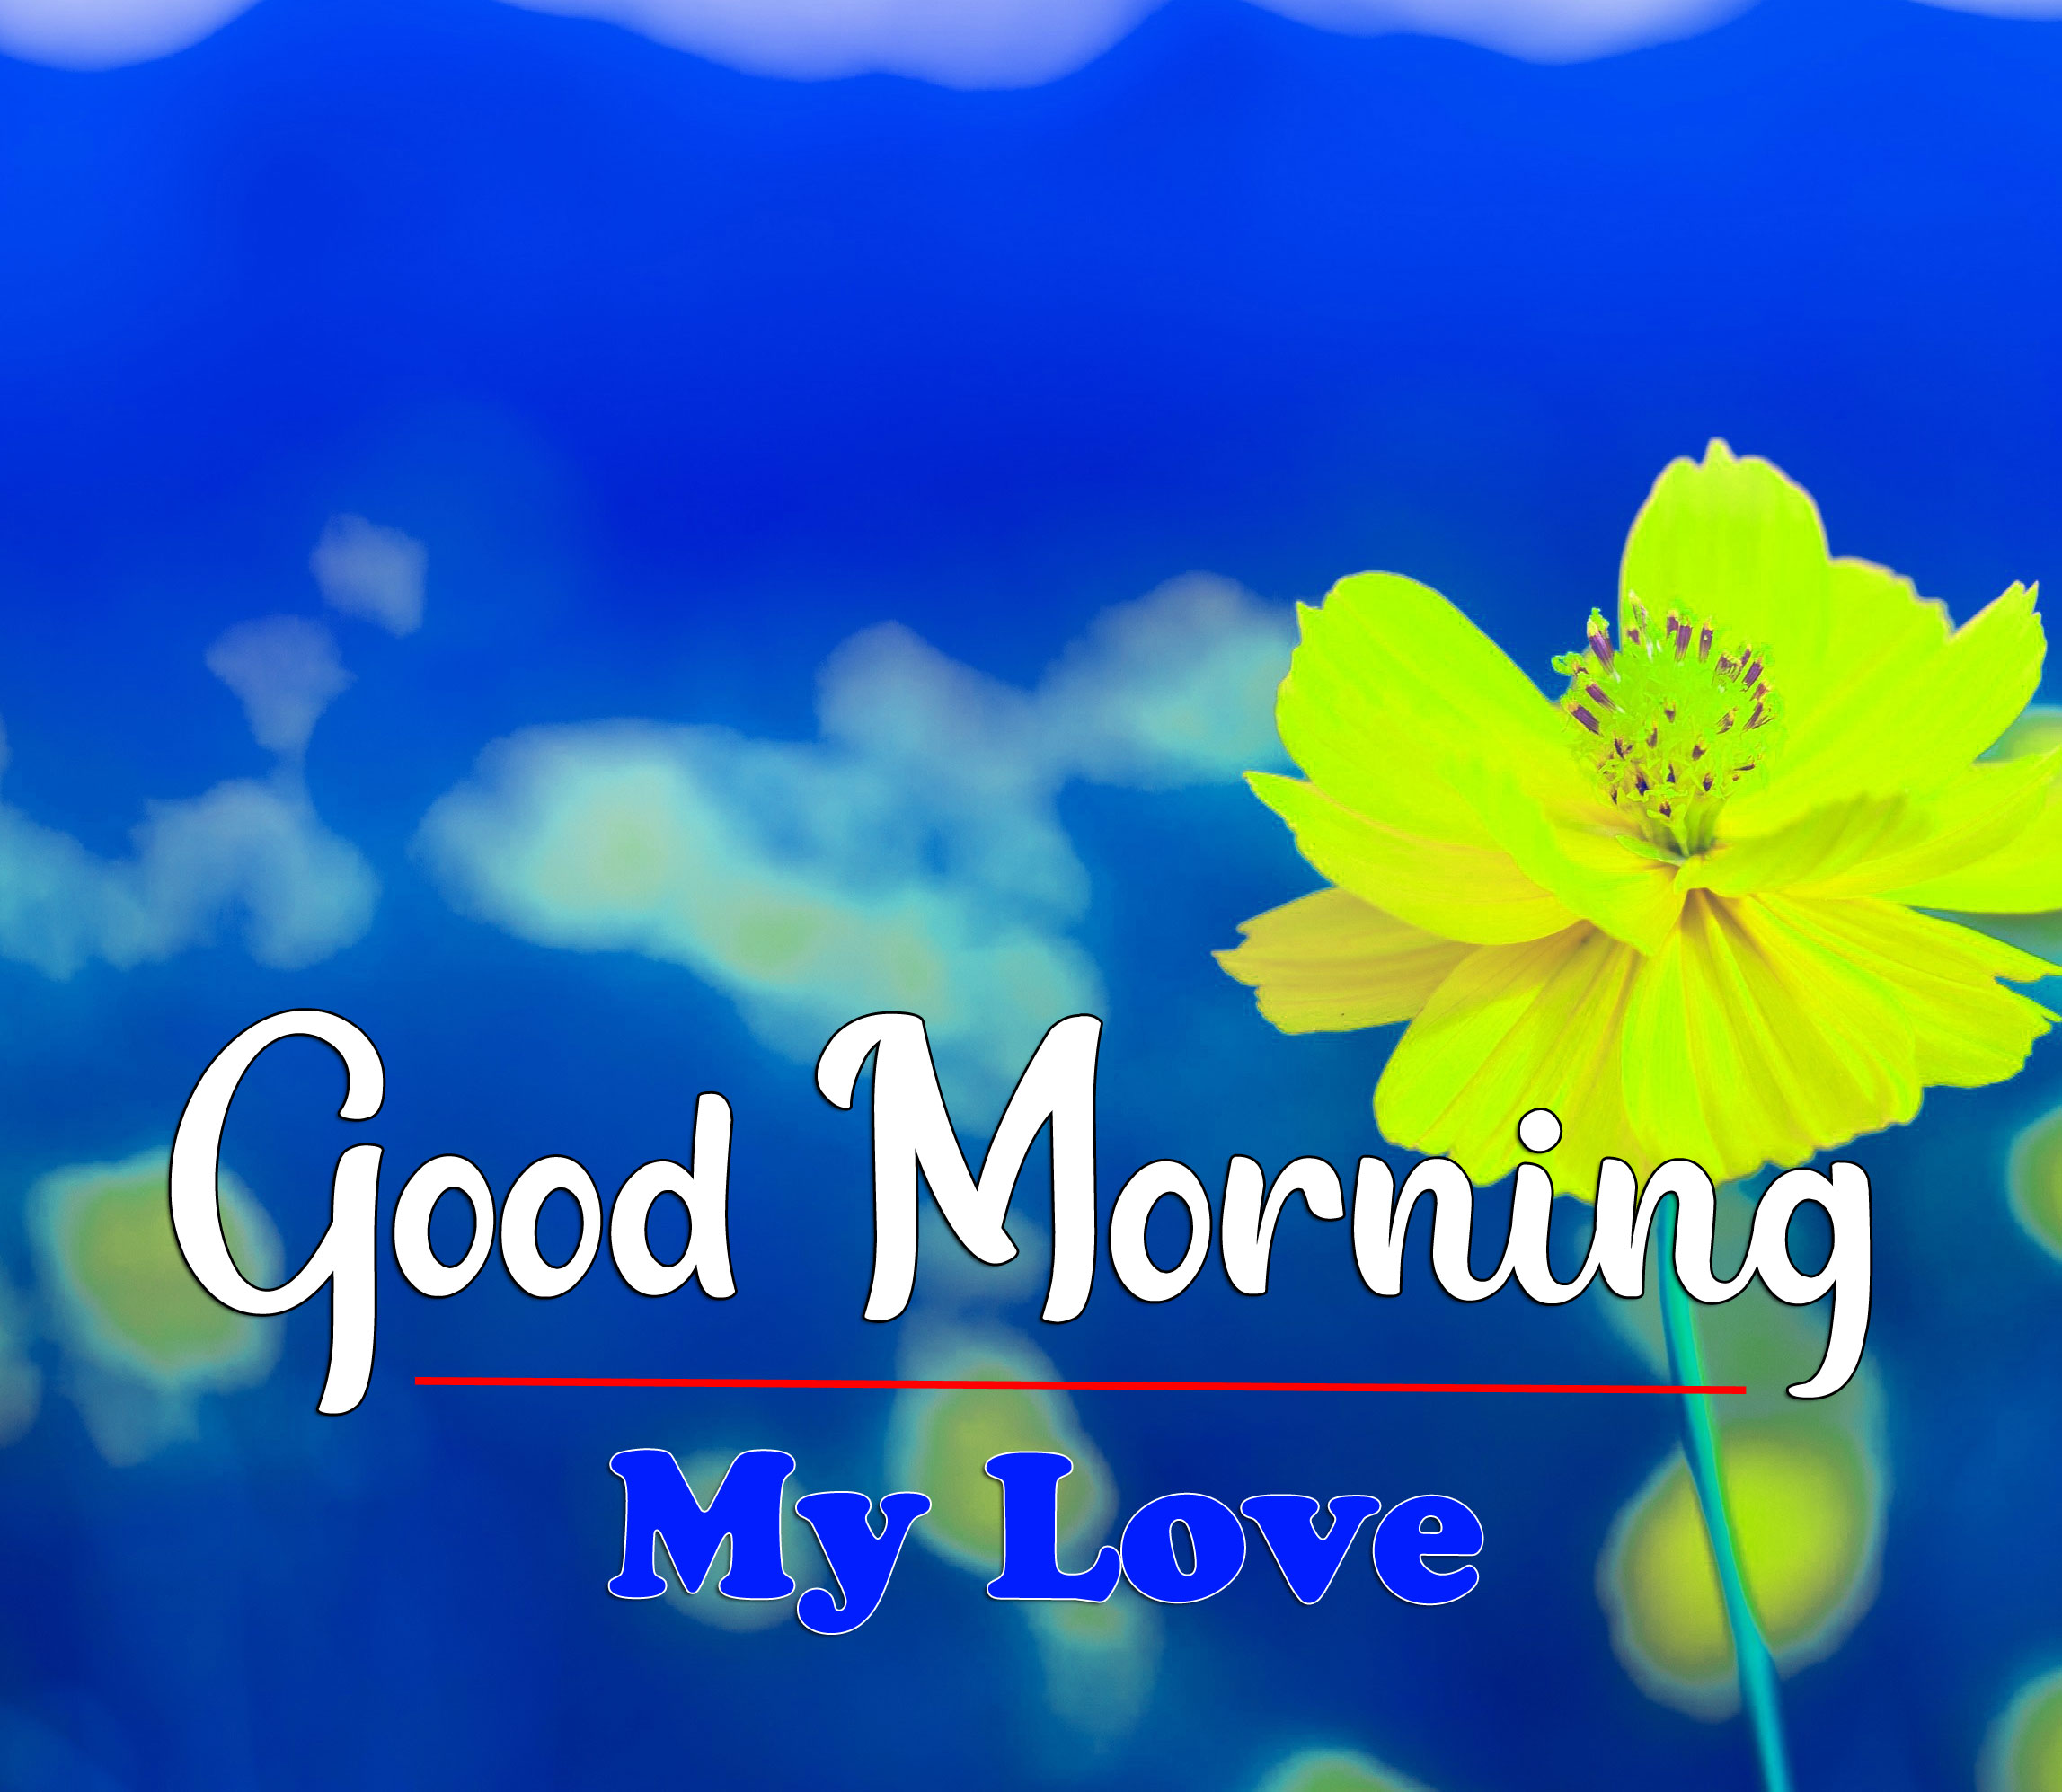 New Free HD Latest Good Morning Images Pics Download